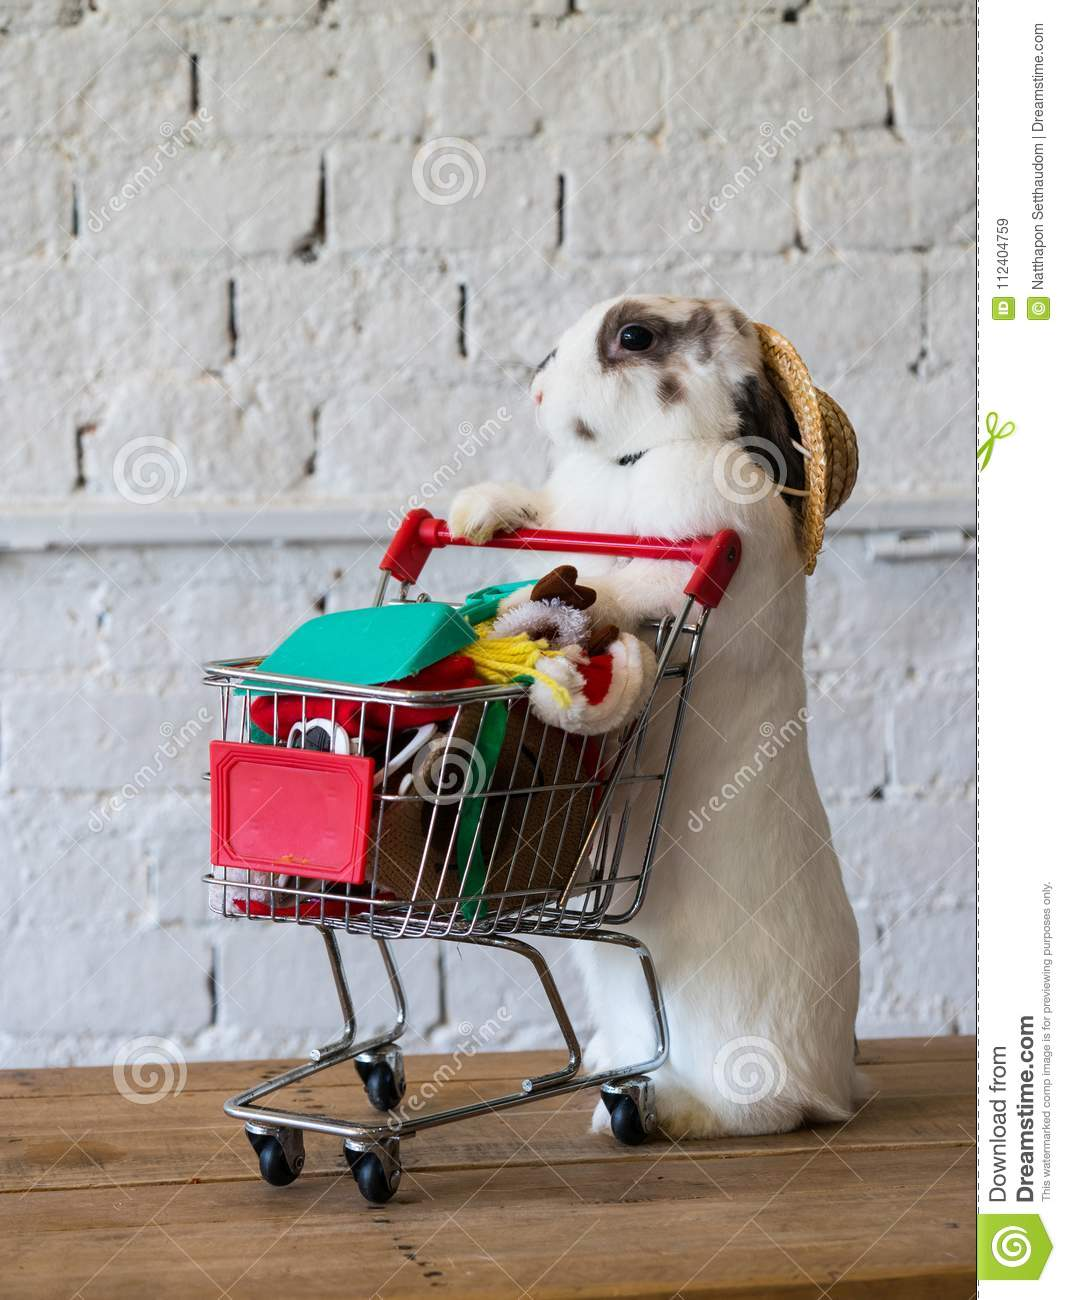 cute rabbit with full shopping cart illustrate a shopping concept